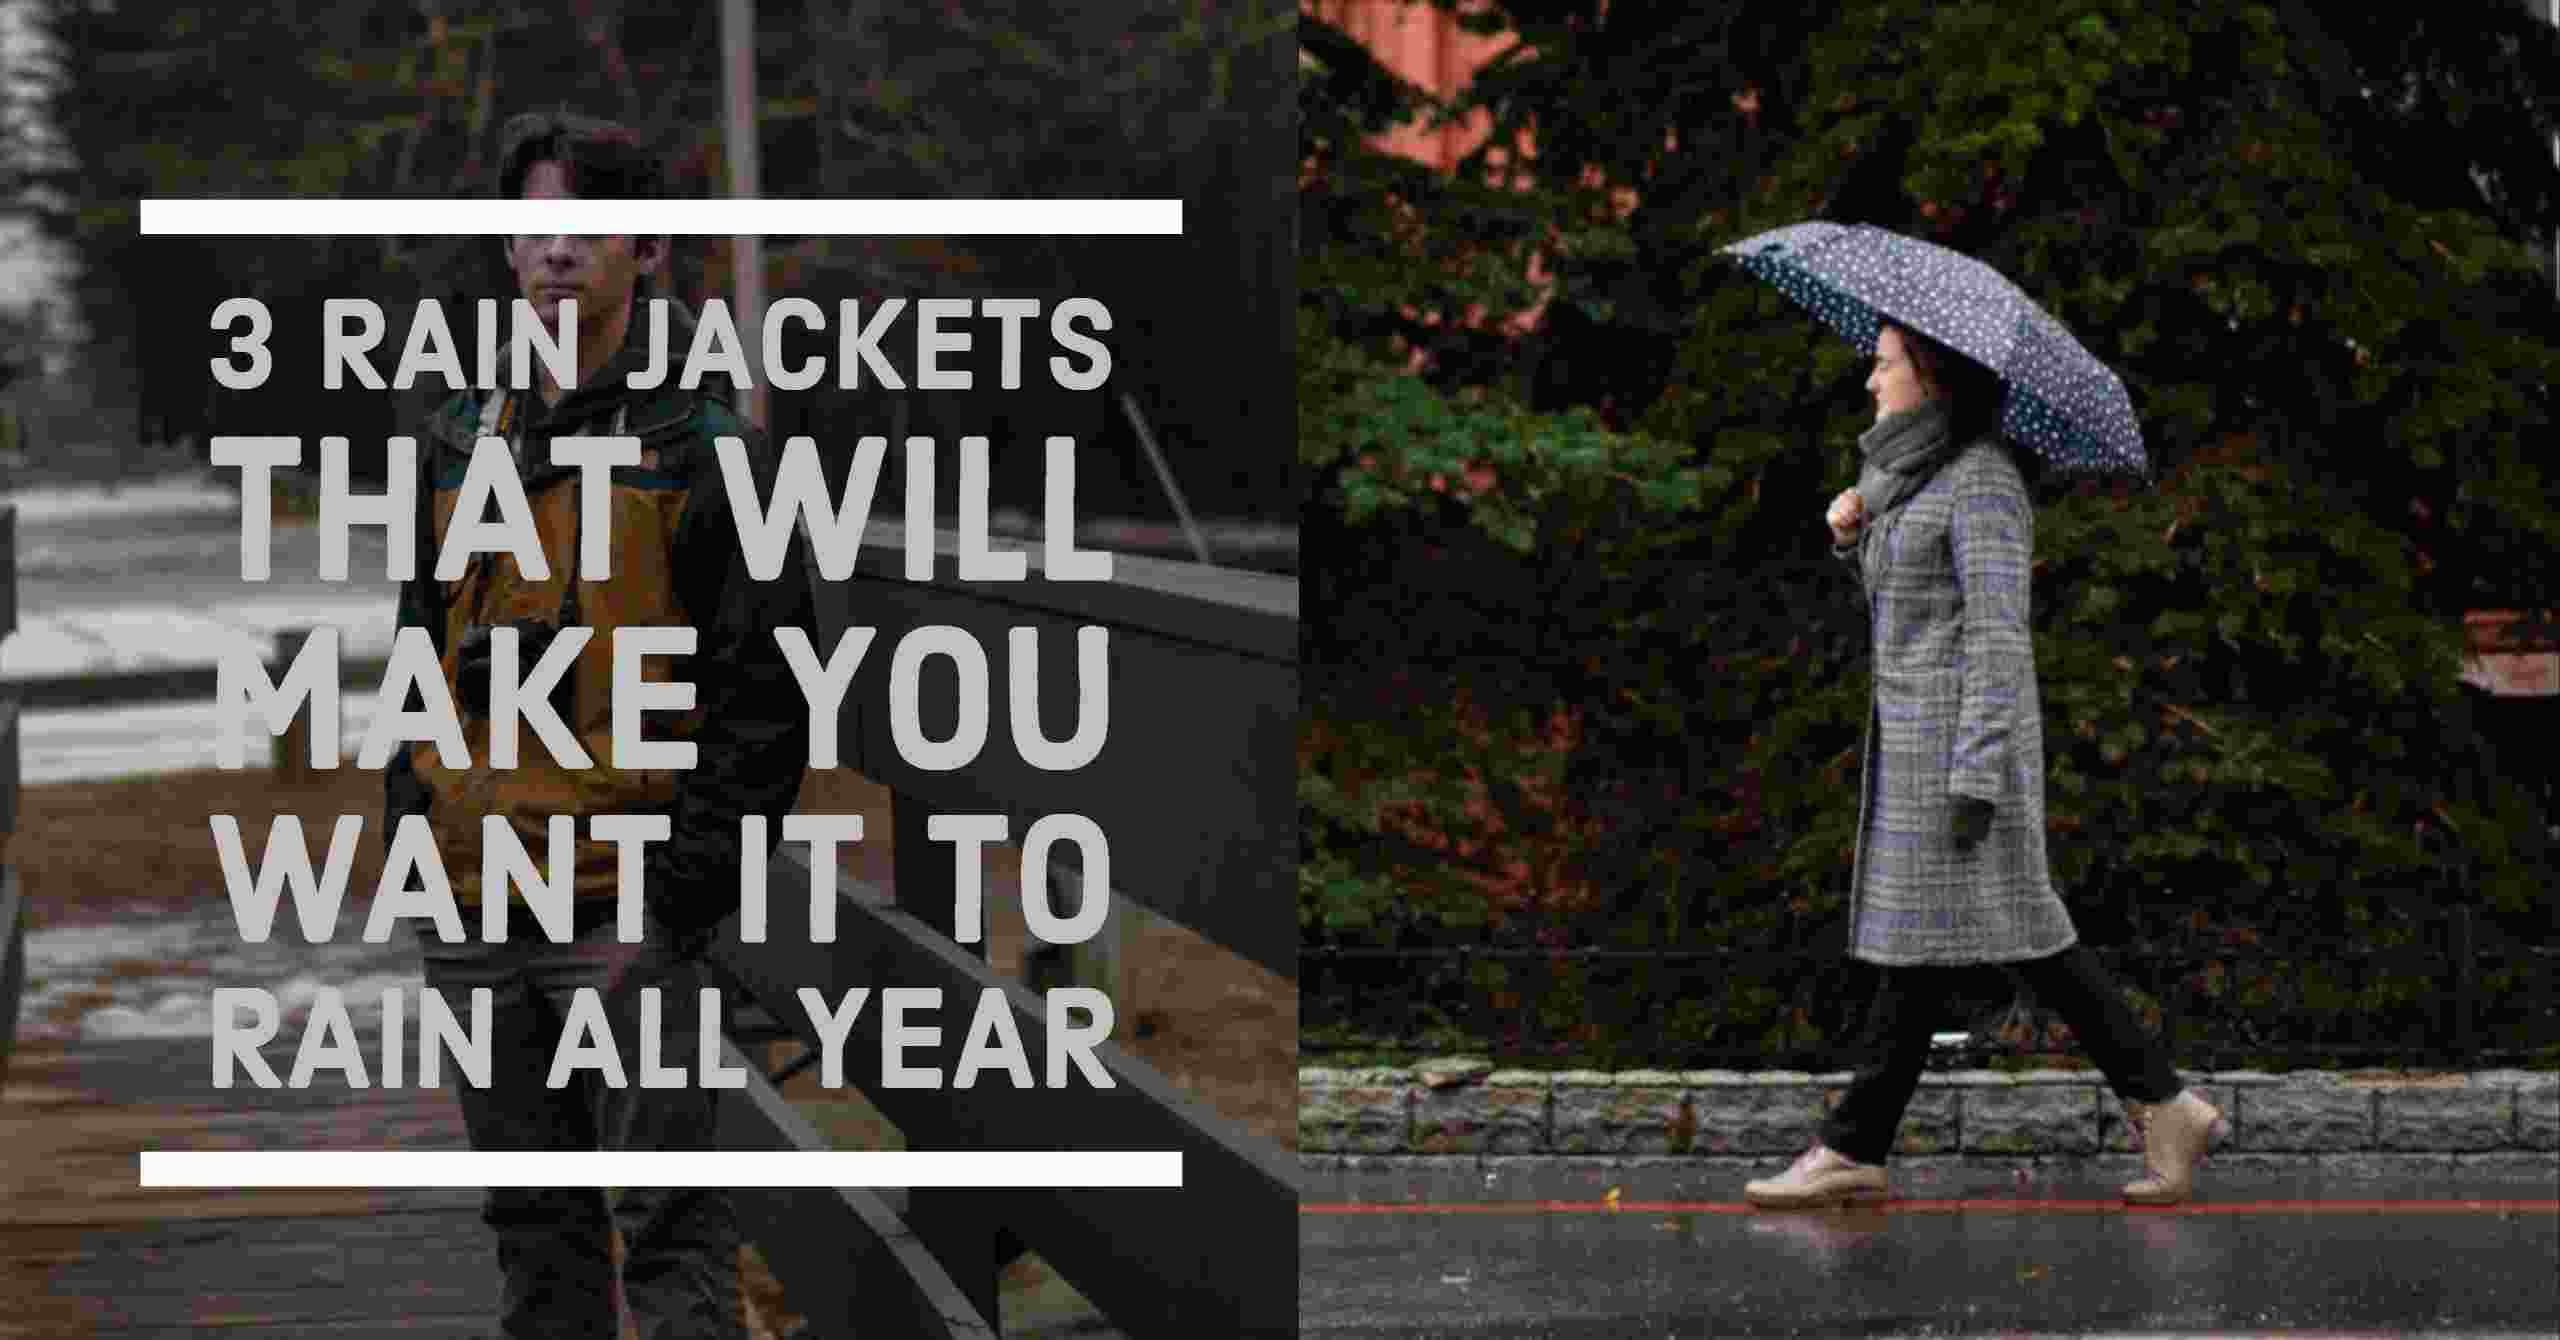 3 Rain Jackets that Will Make You Want It to Rain All Year